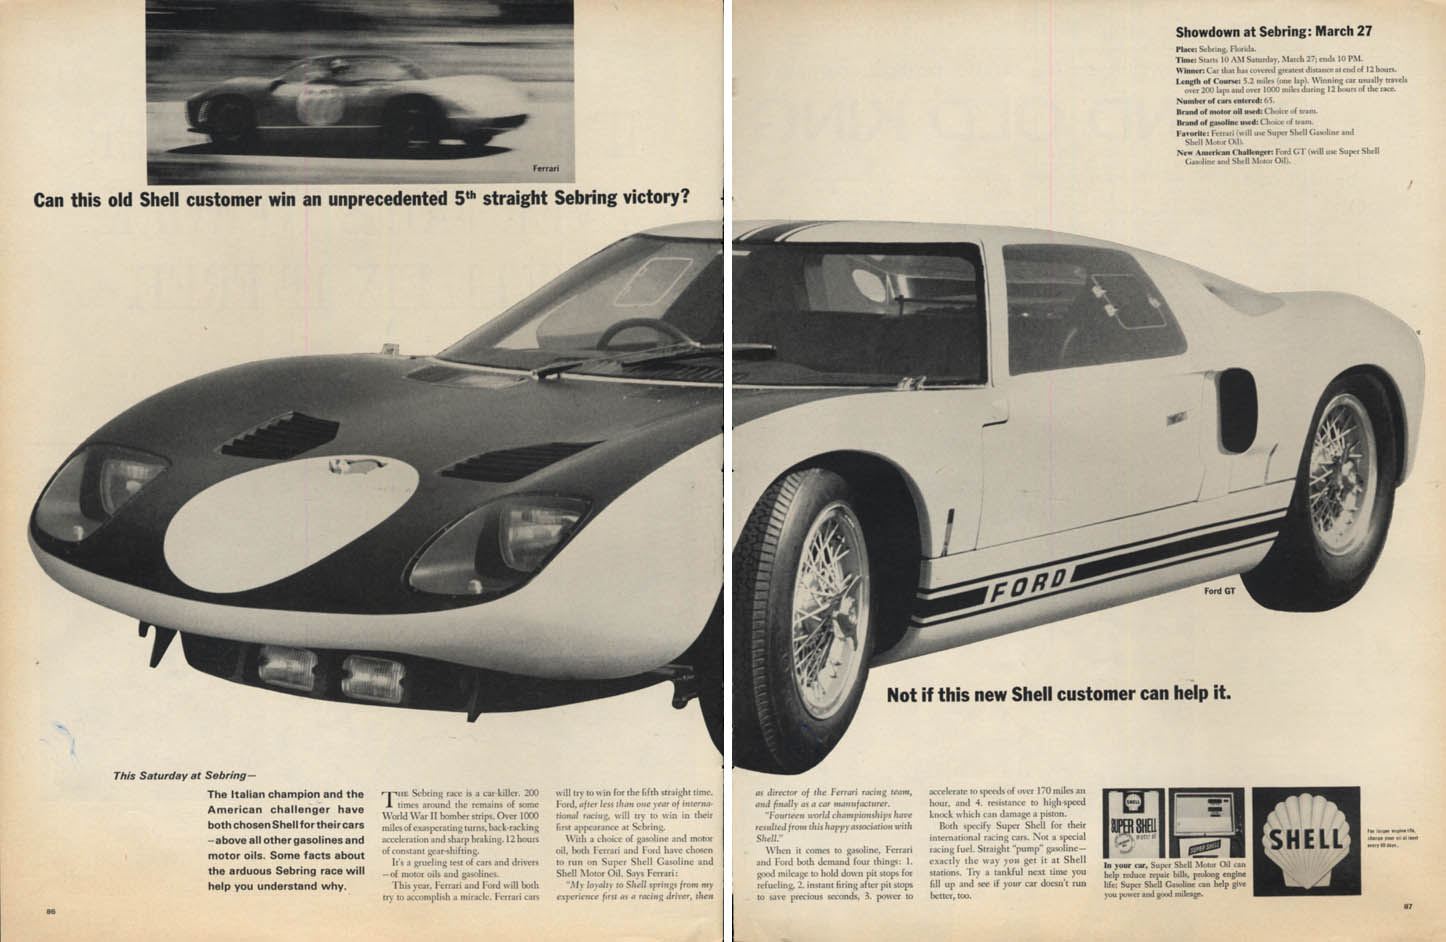 Image for Can Ferrari win a 5th straight Sebring win? Not if Ford GT can help it Shell ad